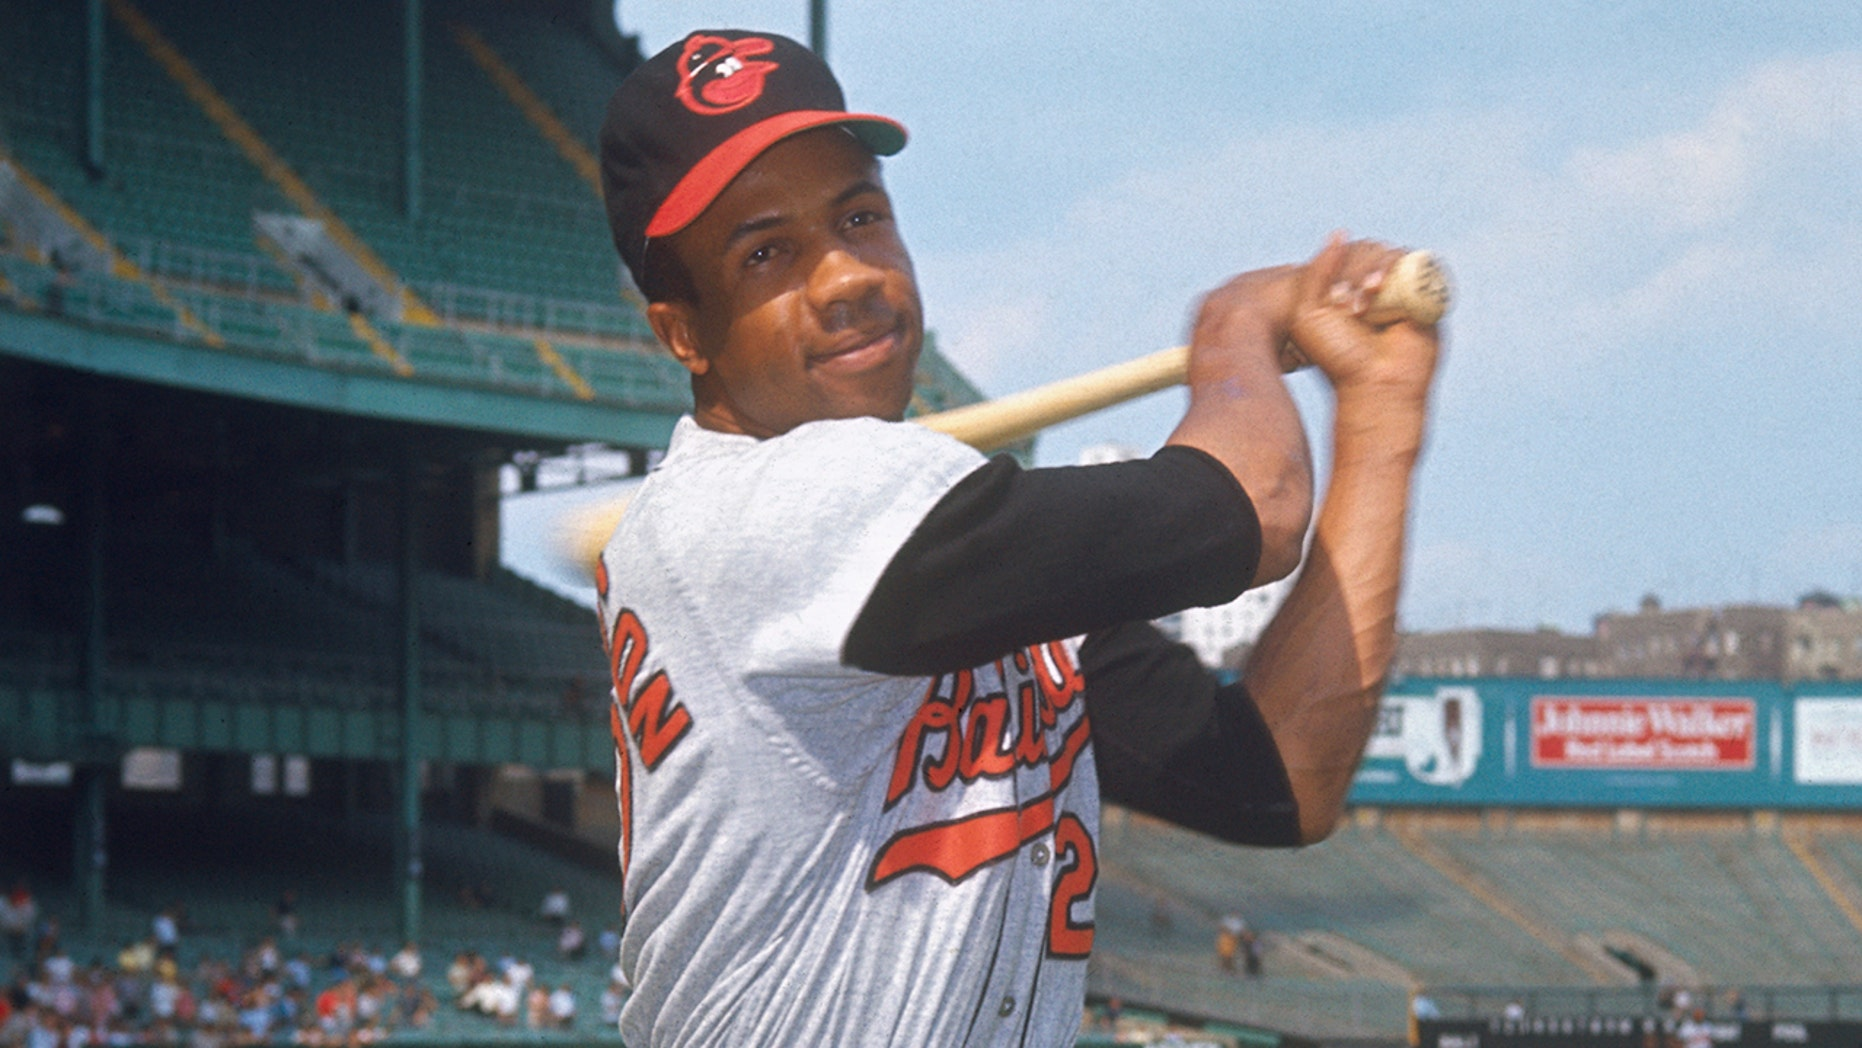 Baltimore Orioles' outfielder Frank Robinson in batting stance at Yankee Stadium.